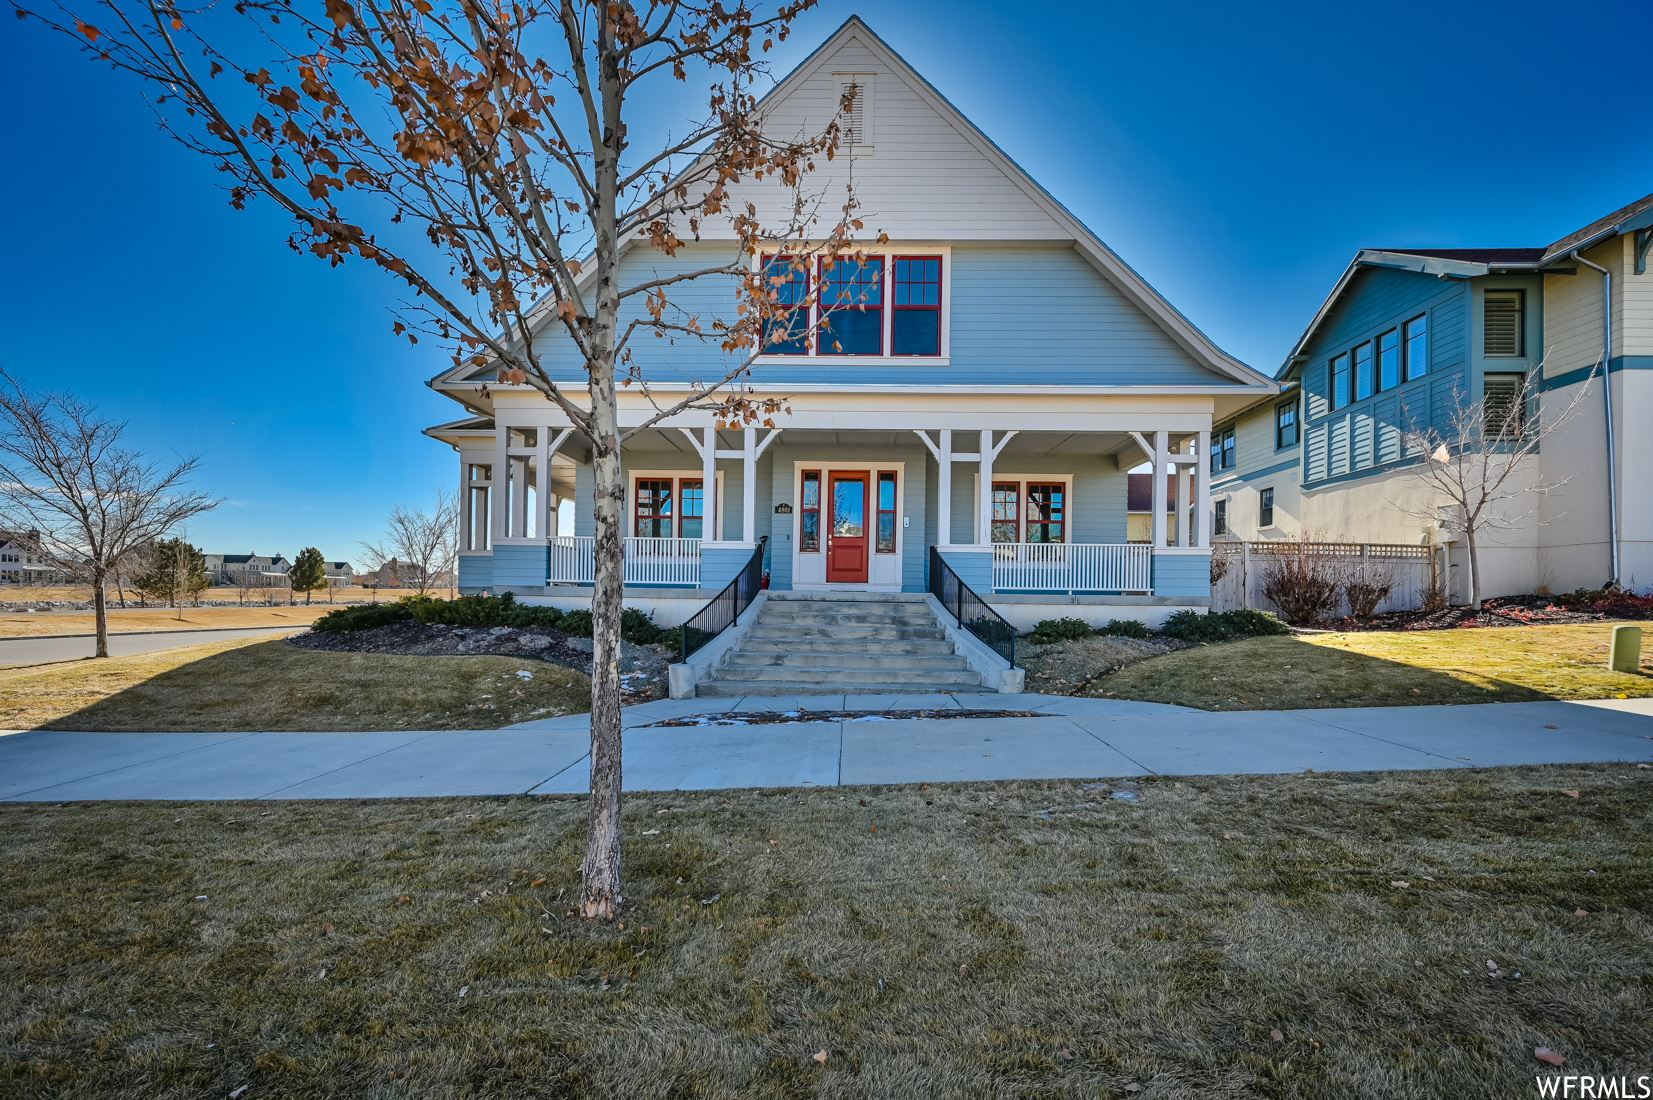 Photo of 4801 W DOCK ST, South Jordan, UT 84009 (MLS # 1721047)